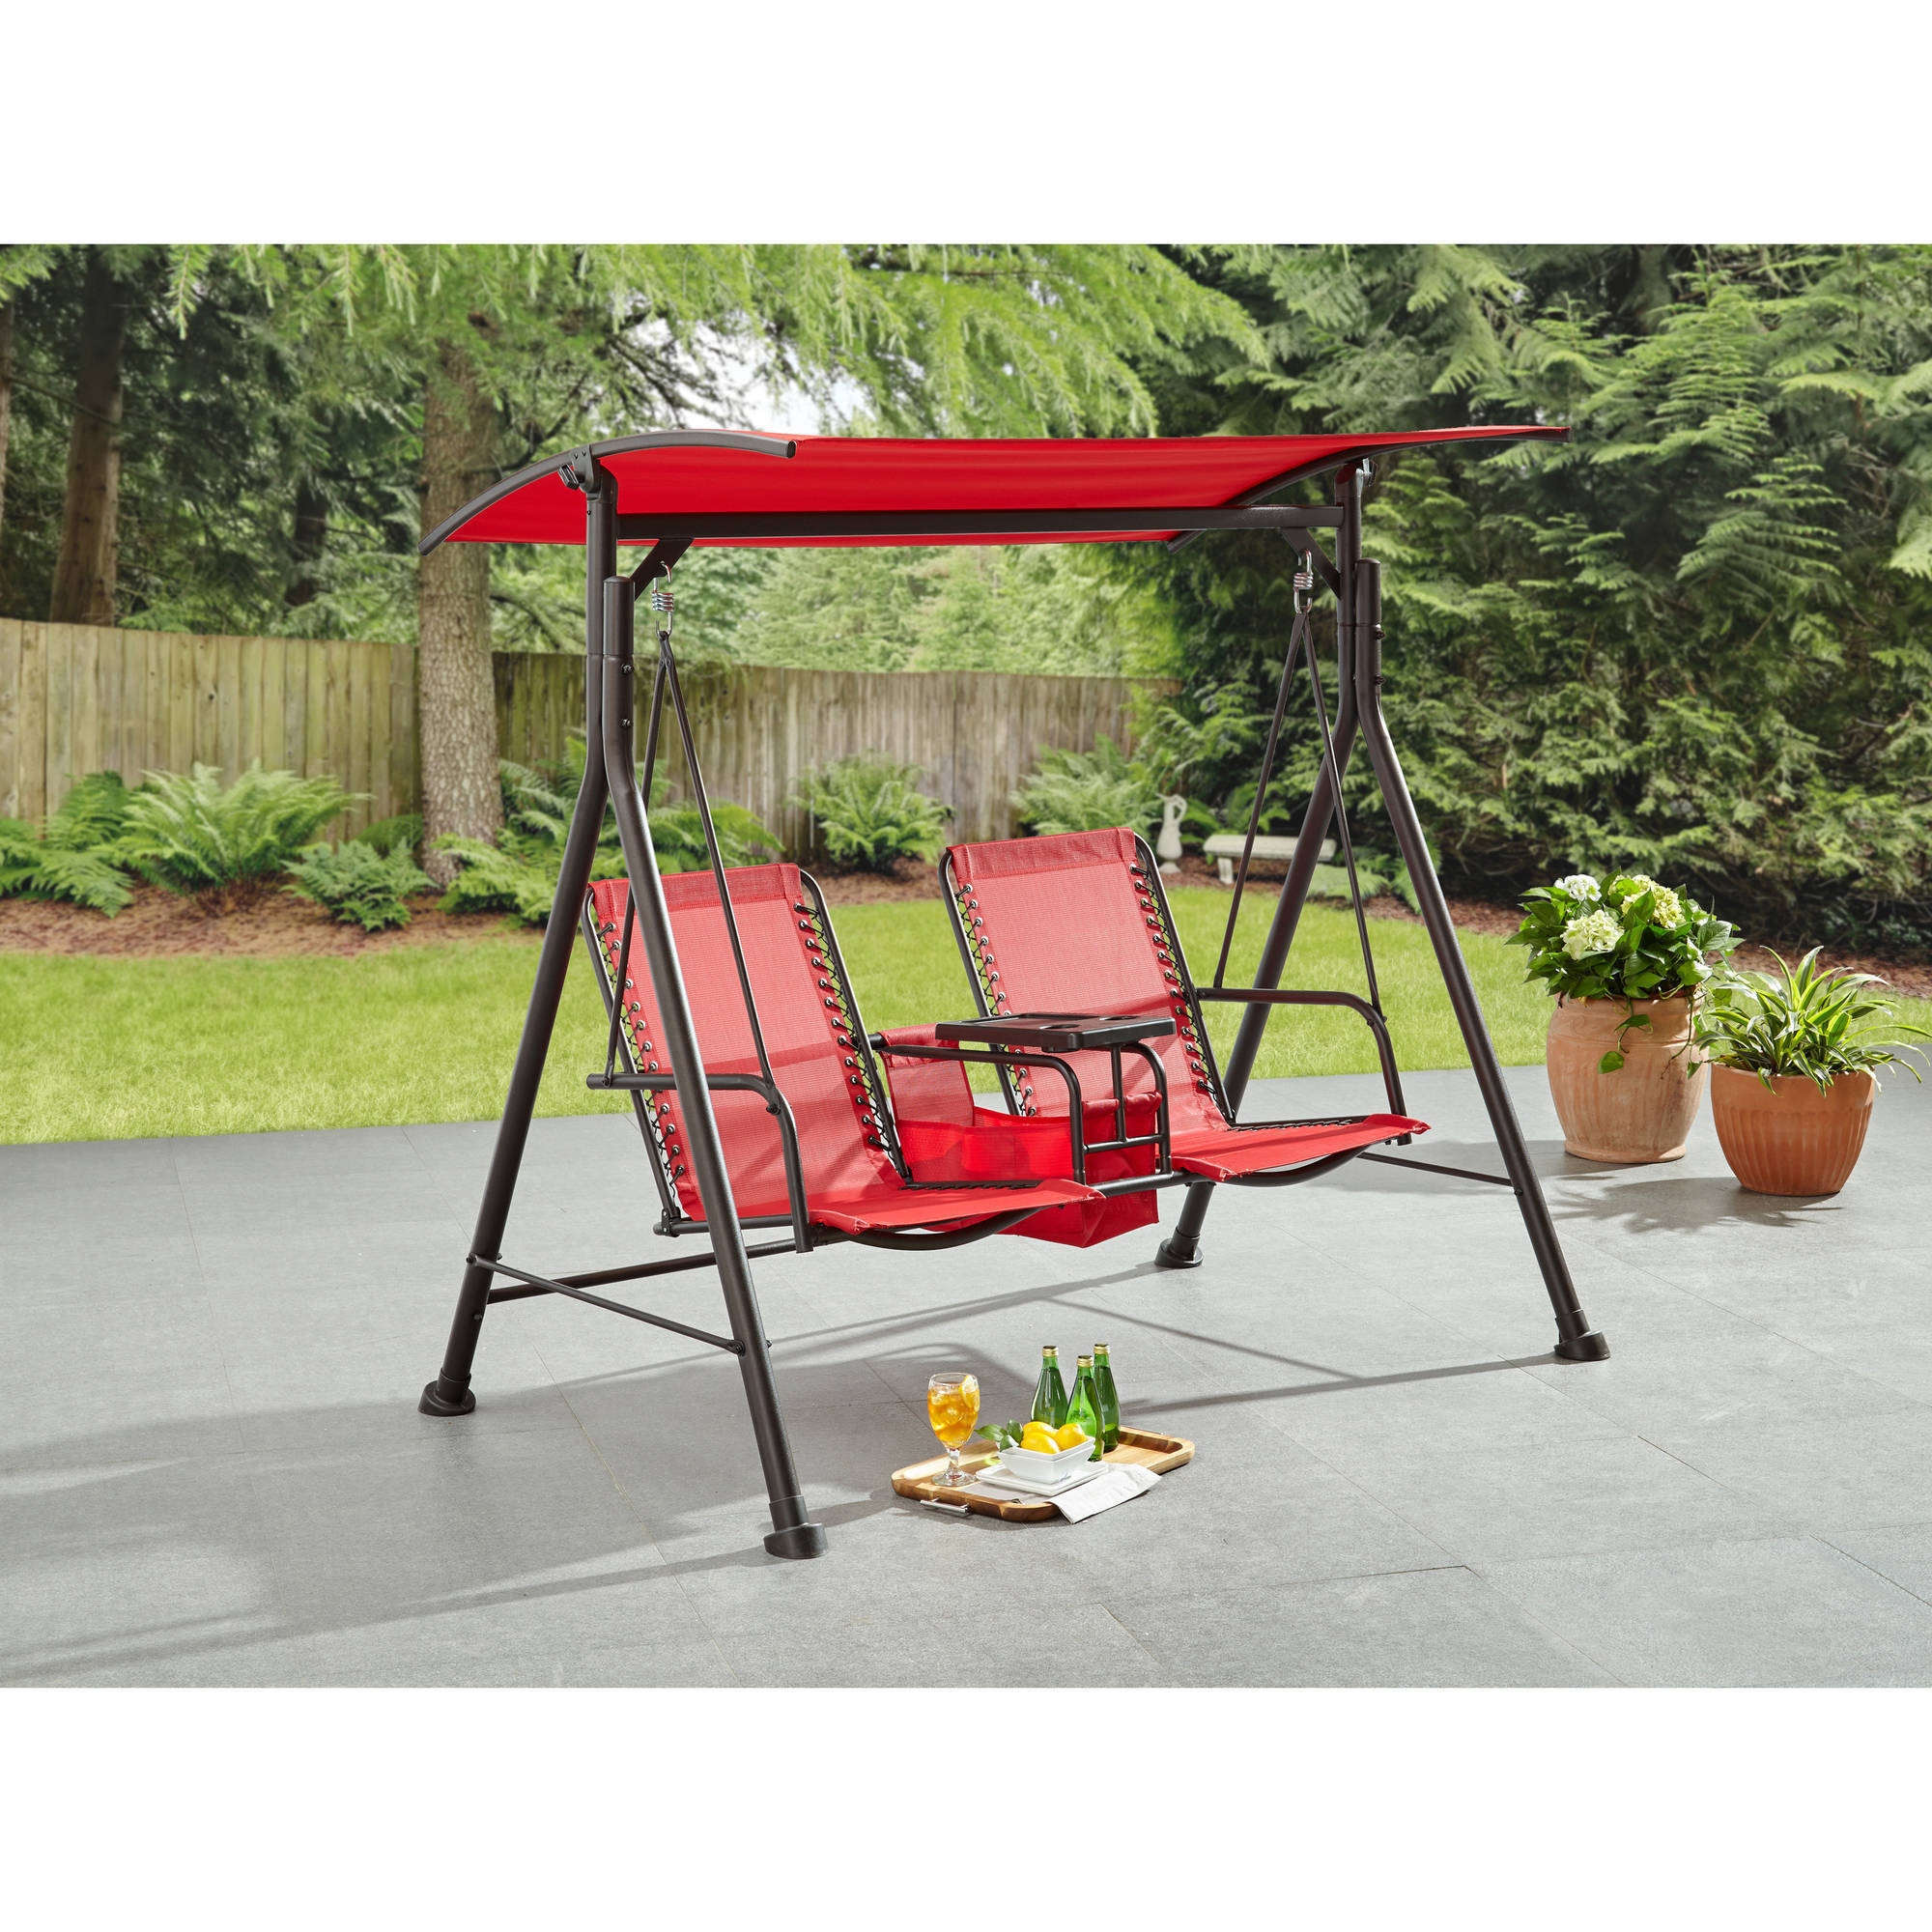 Favorite Canopy Patio Porch Swings With Pillows And Cup Holders With Regard To Mainstays Big And Tall 2 Person Bungee Canopy Porch Swing – Walmart (View 2 of 25)